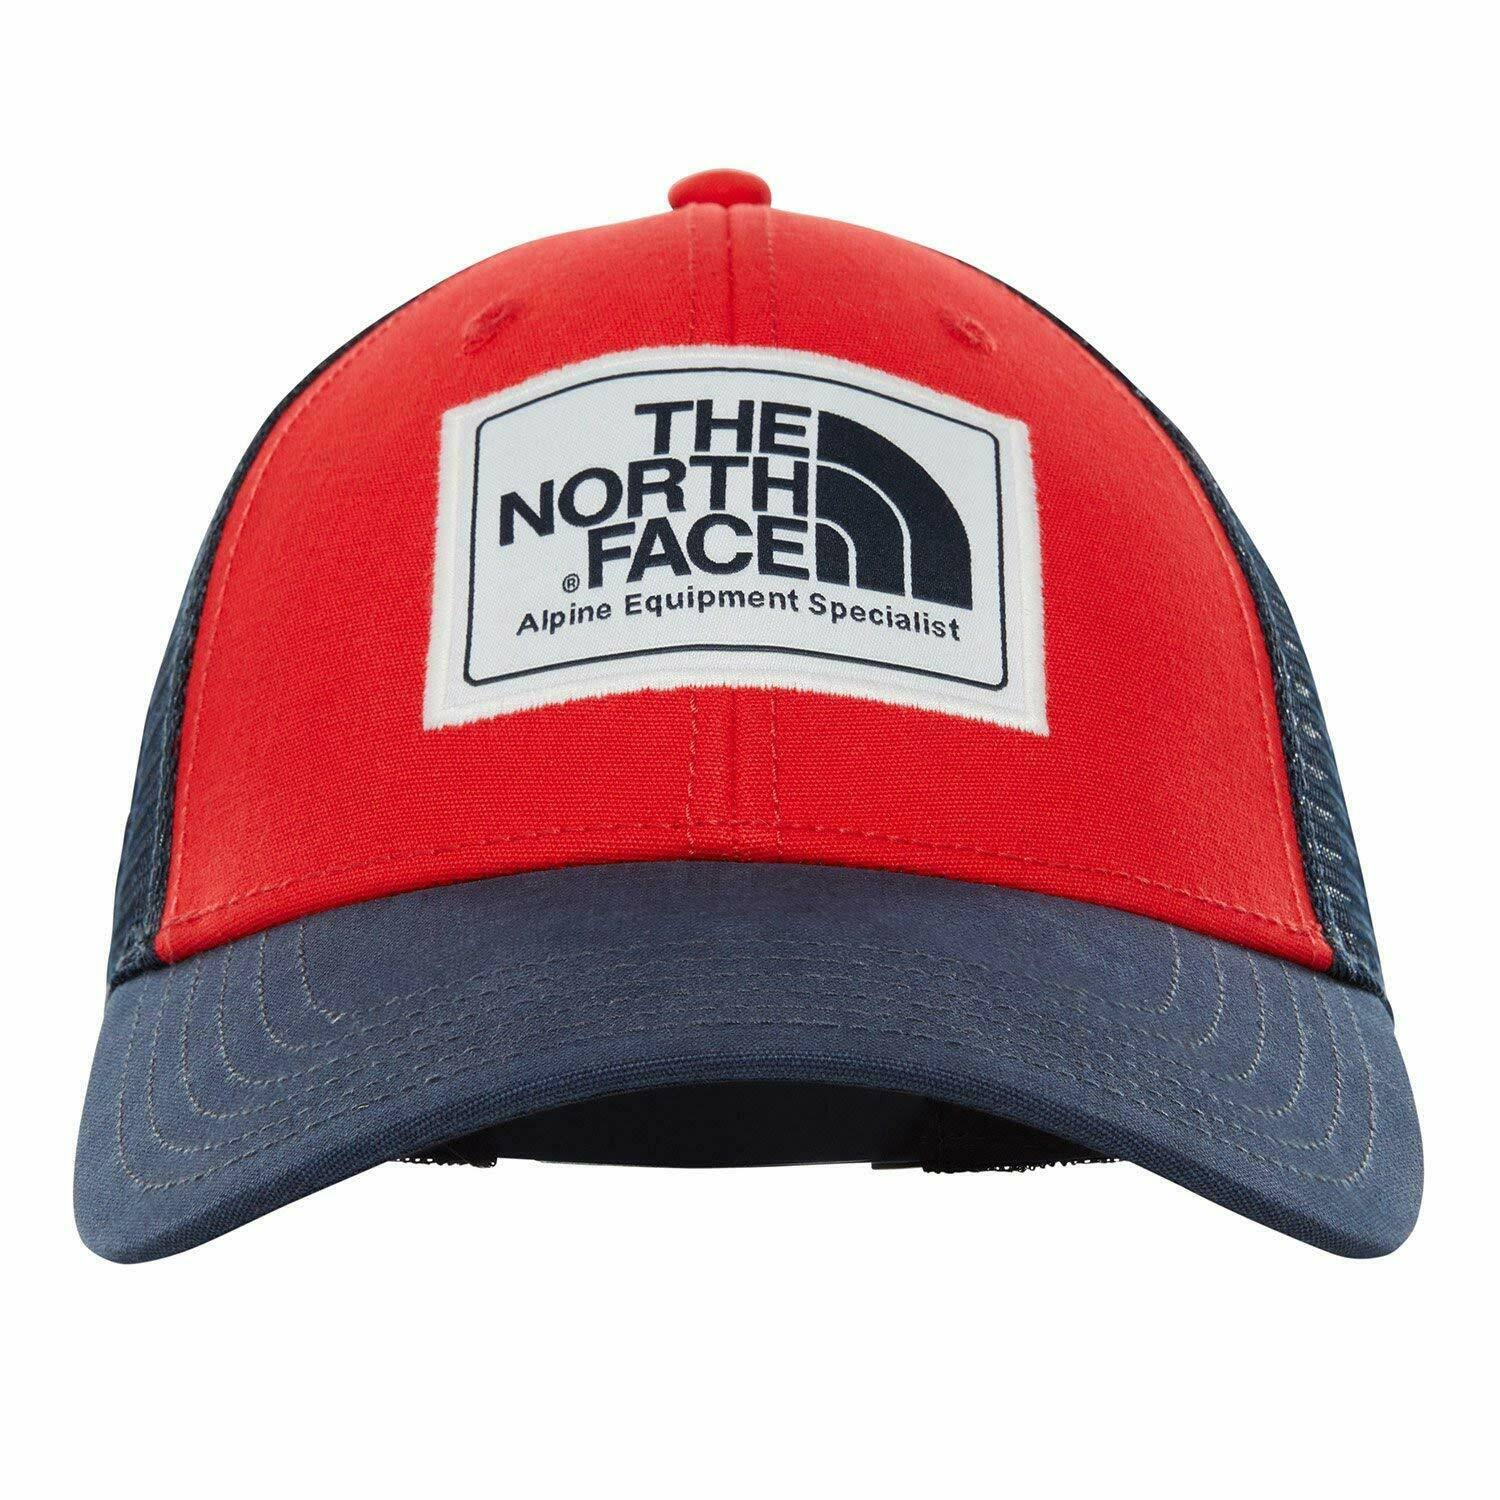 The North Face Men's Mudder Trucker Hat, Size: One size, Red